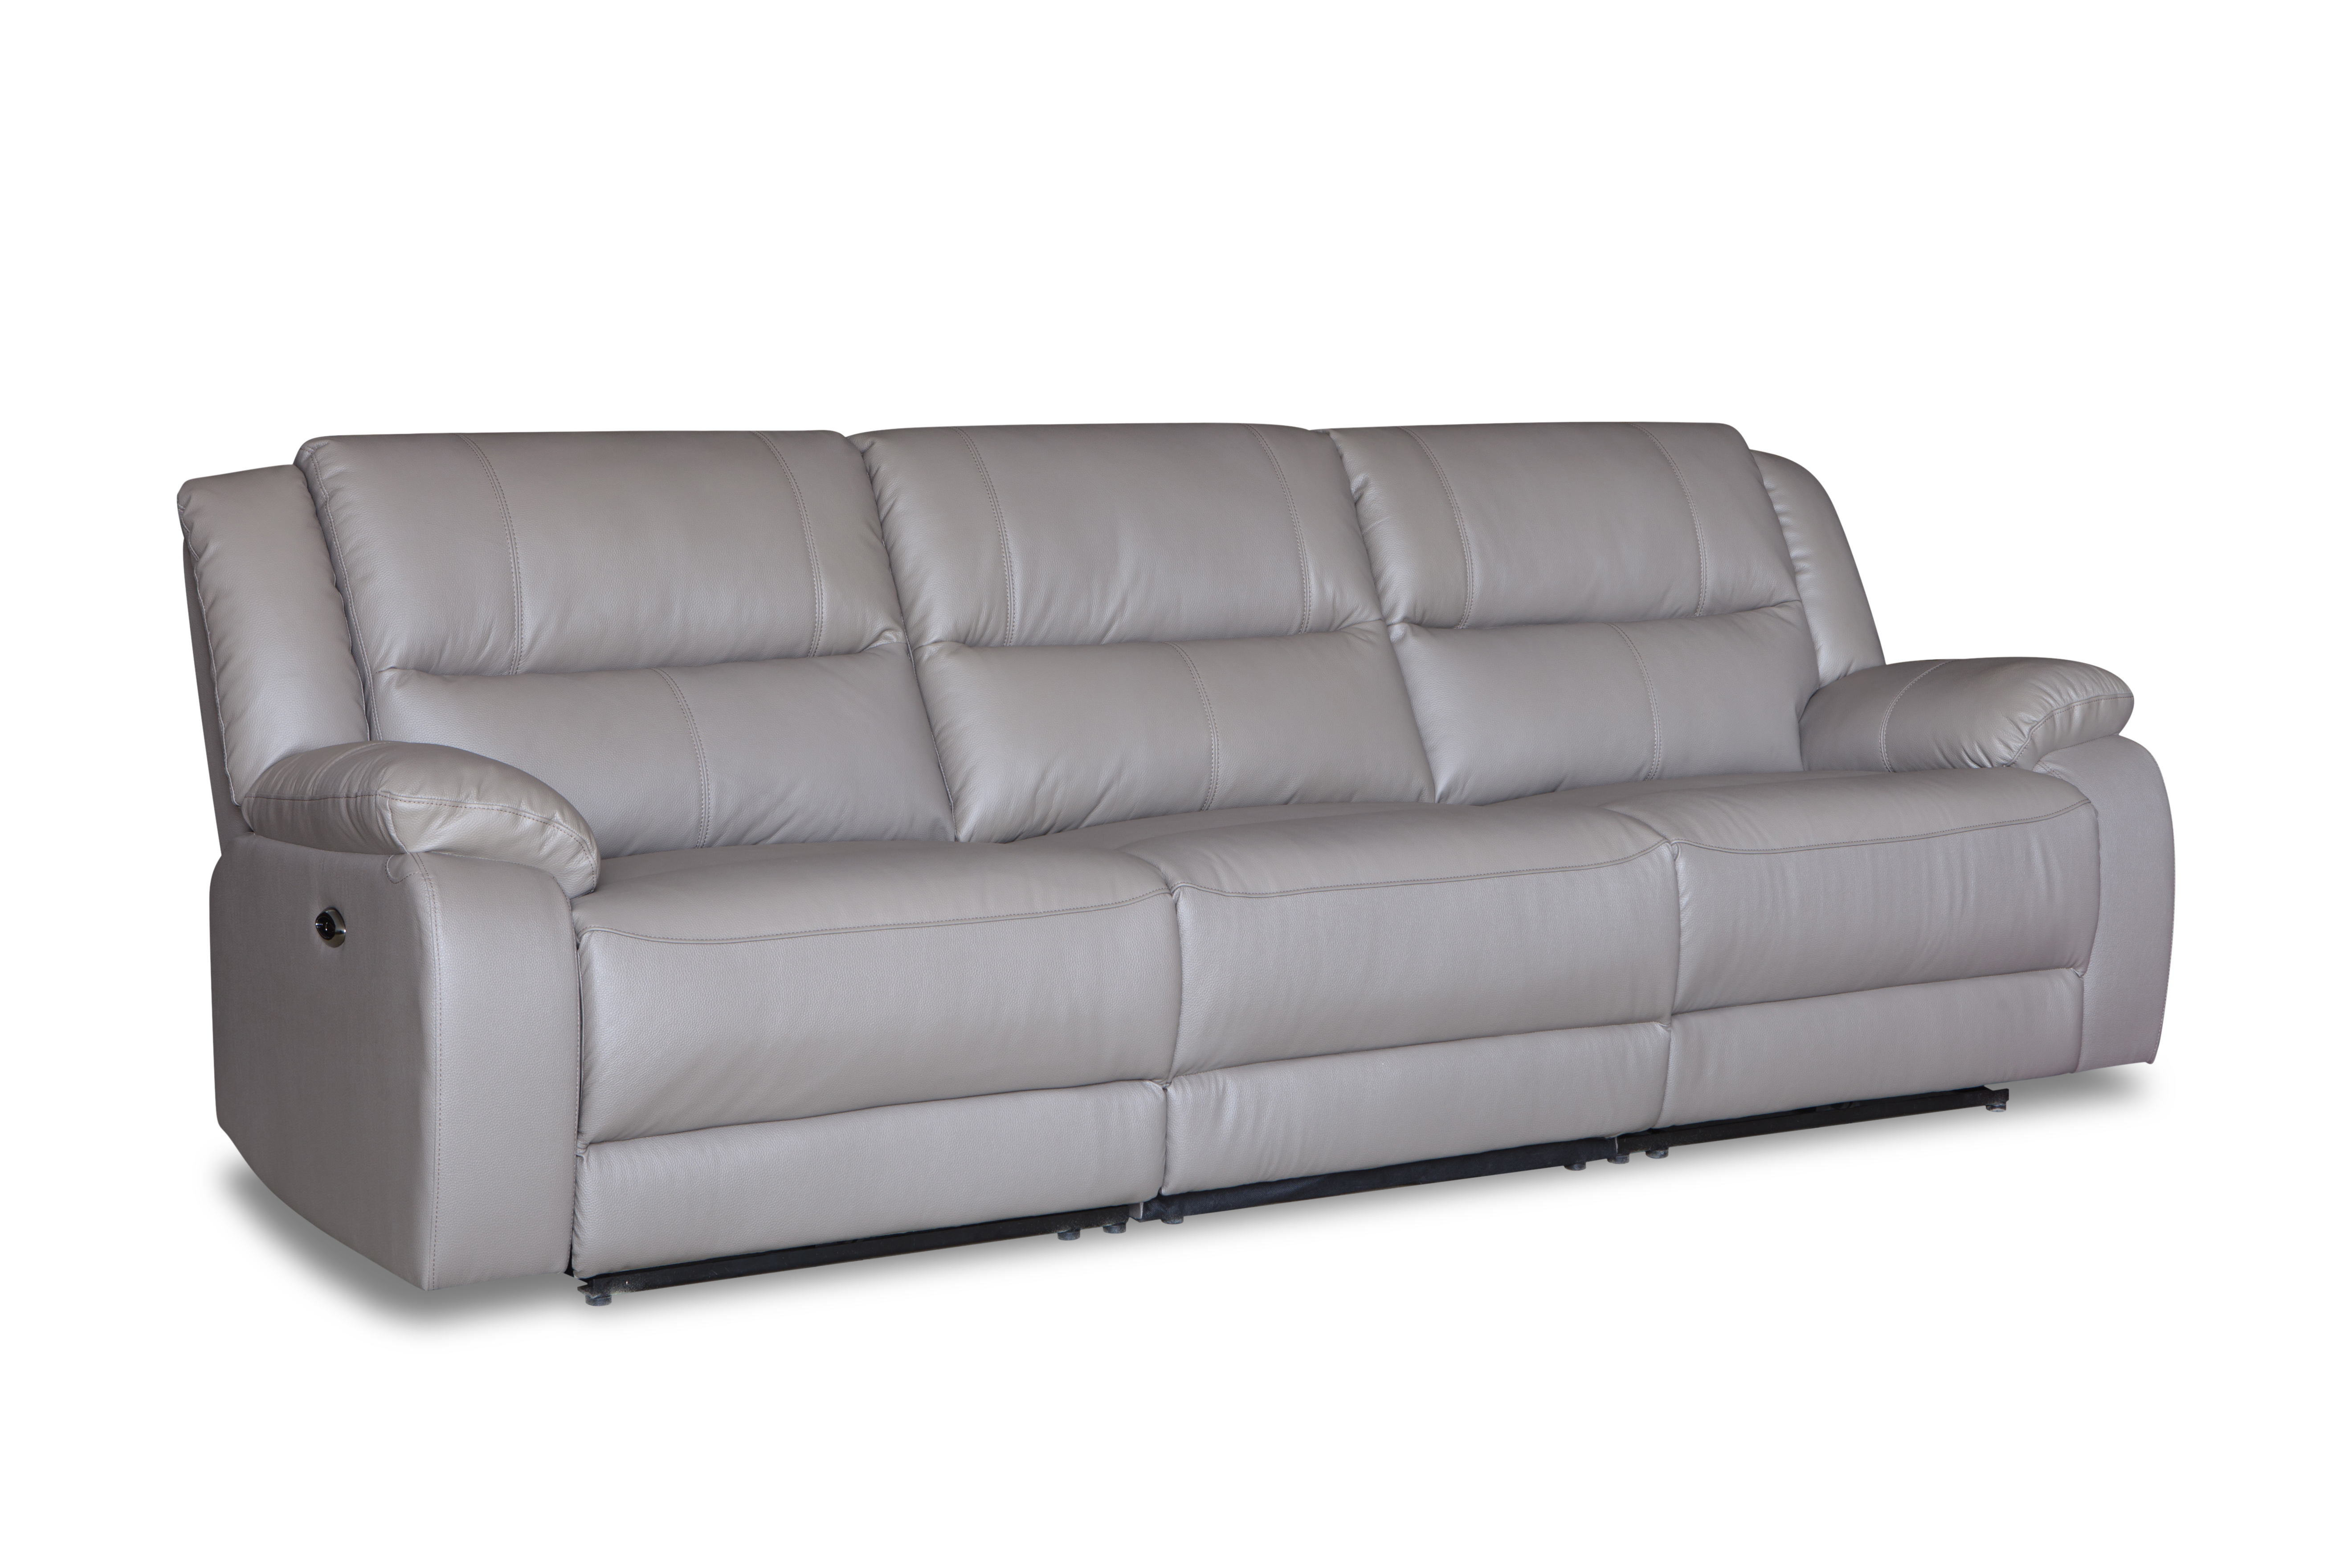 Modern and simple design living room leisure leather recliner sofa